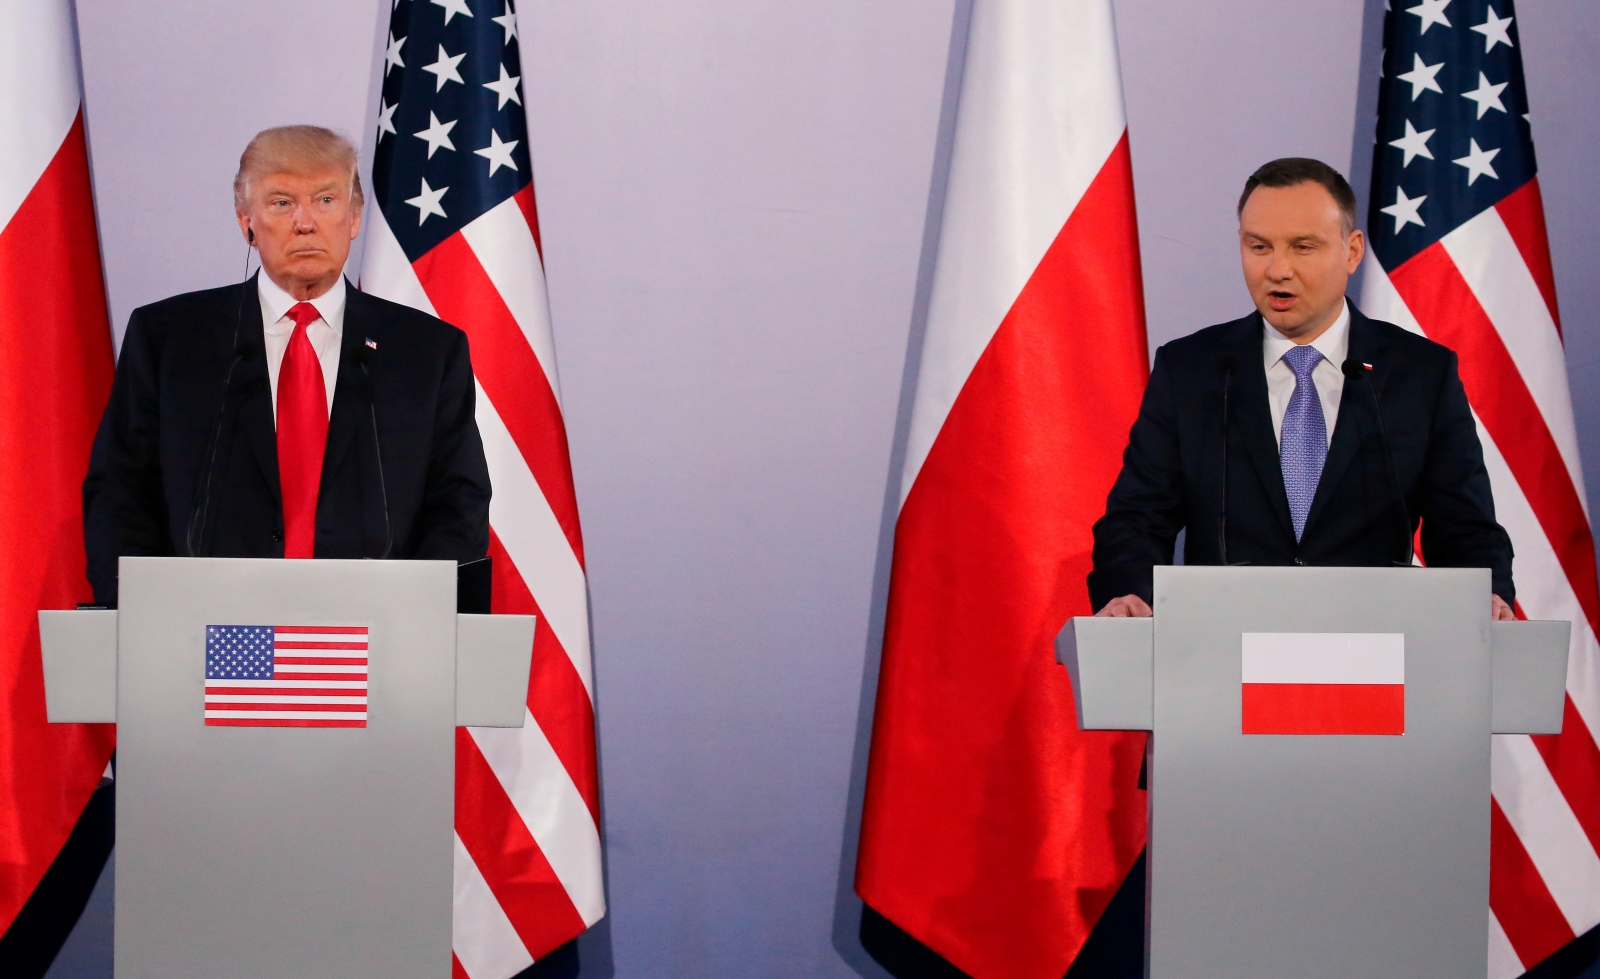 Polish President Andrzej Duda slams 'fake news' over reported Trump handshake snub